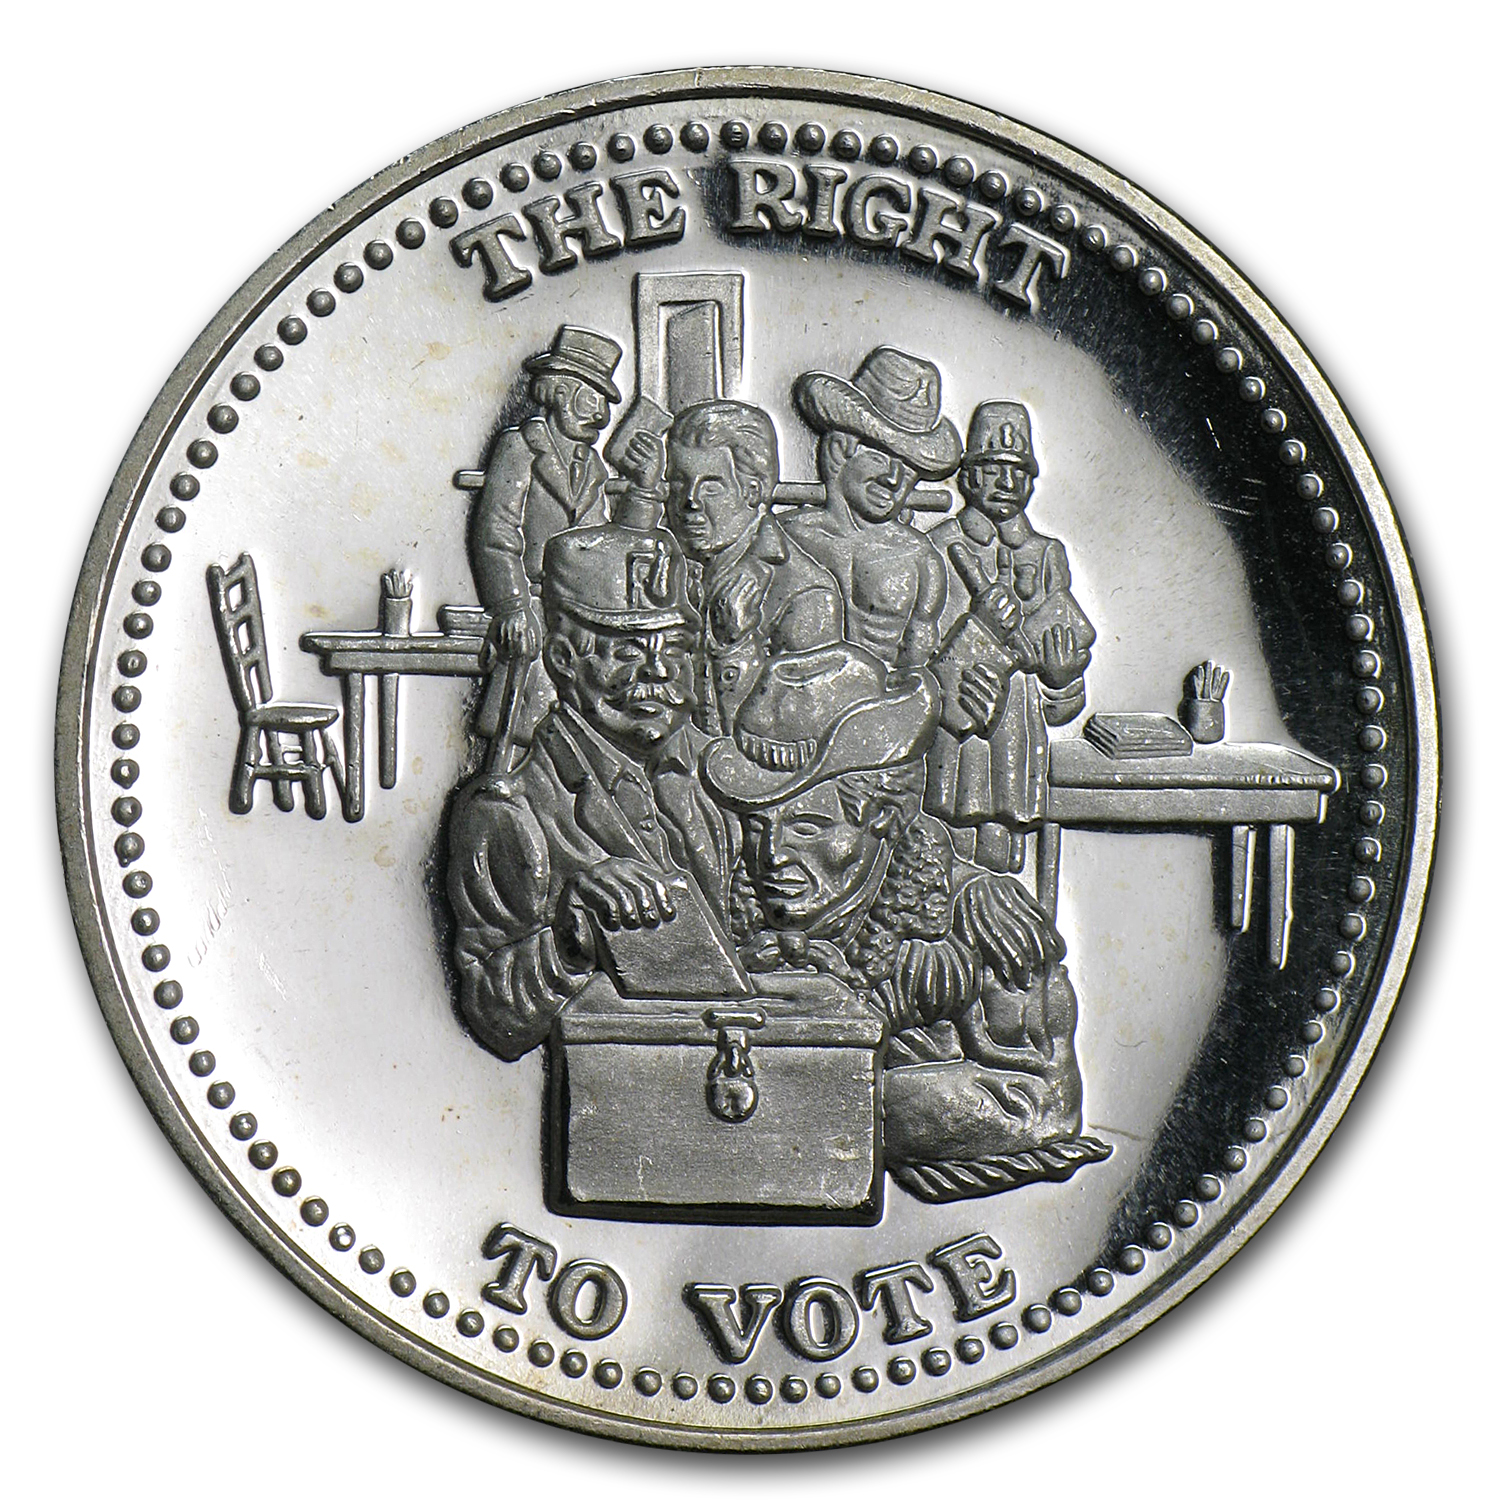 1 oz Silver Rounds - Johnson Matthey (Right to Vote)